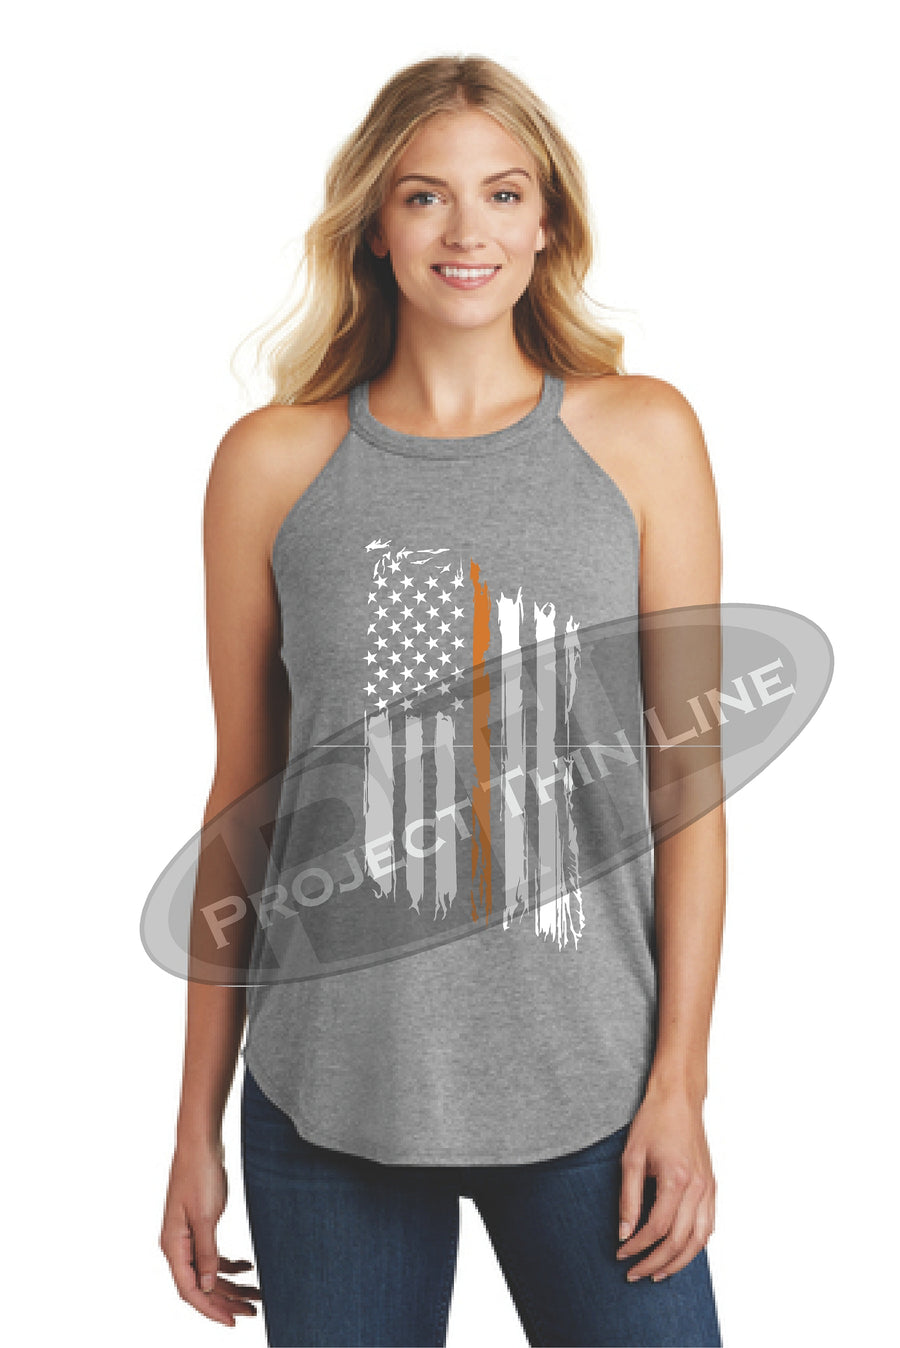 Black Tattered Thin ORANGE Line American Flag Rocker Tank Top - FRONT